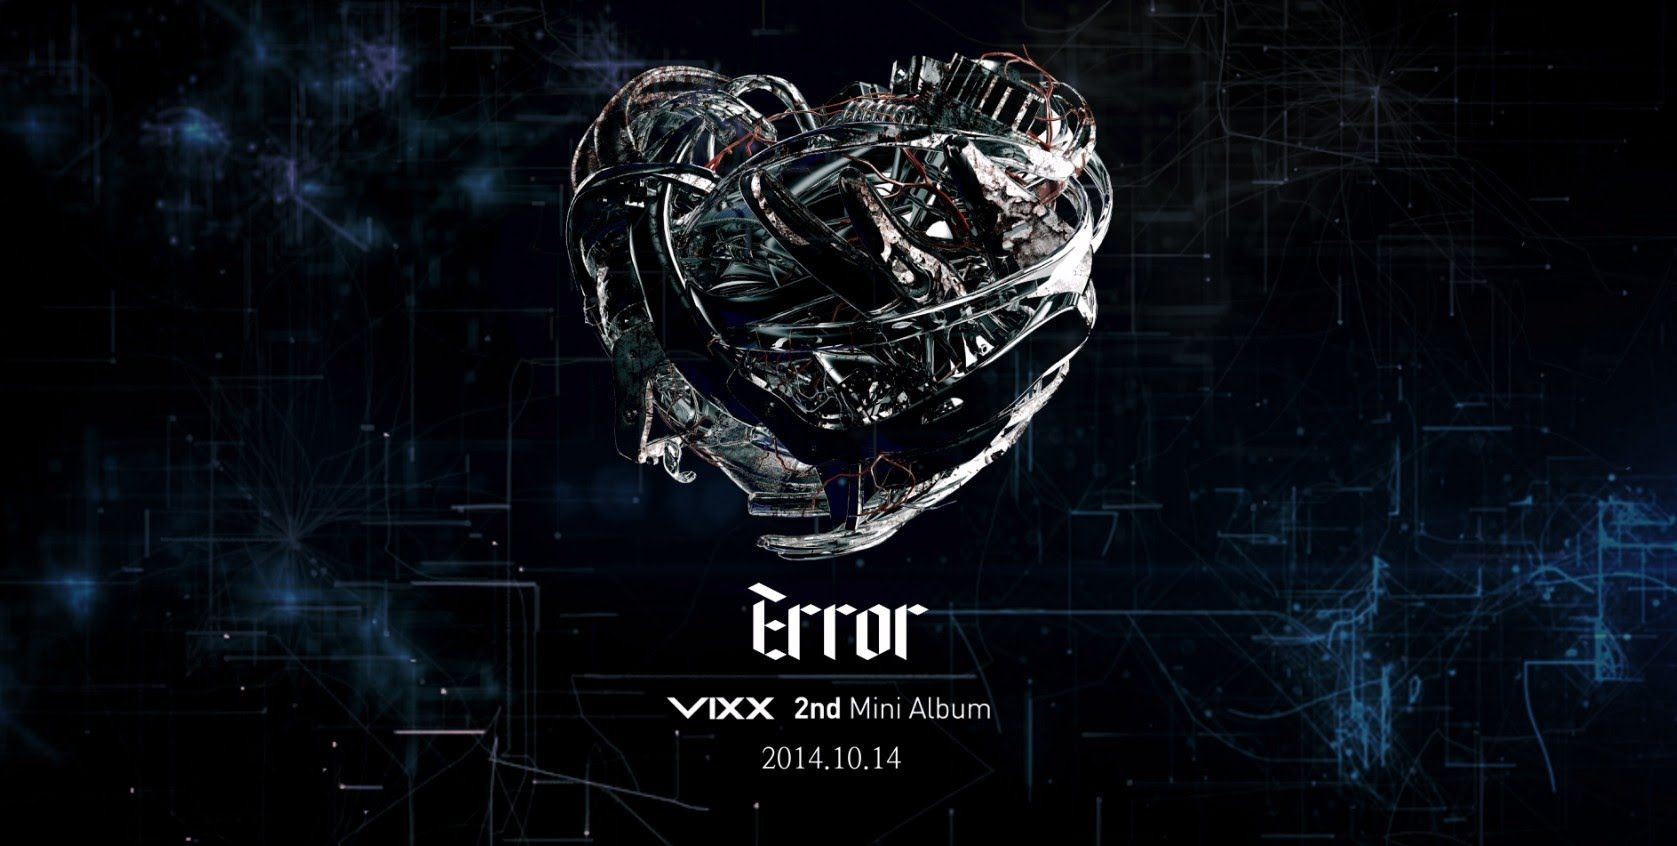 빅스(VIXX) - 2nd Mini Album 'Error' Highlight Medley